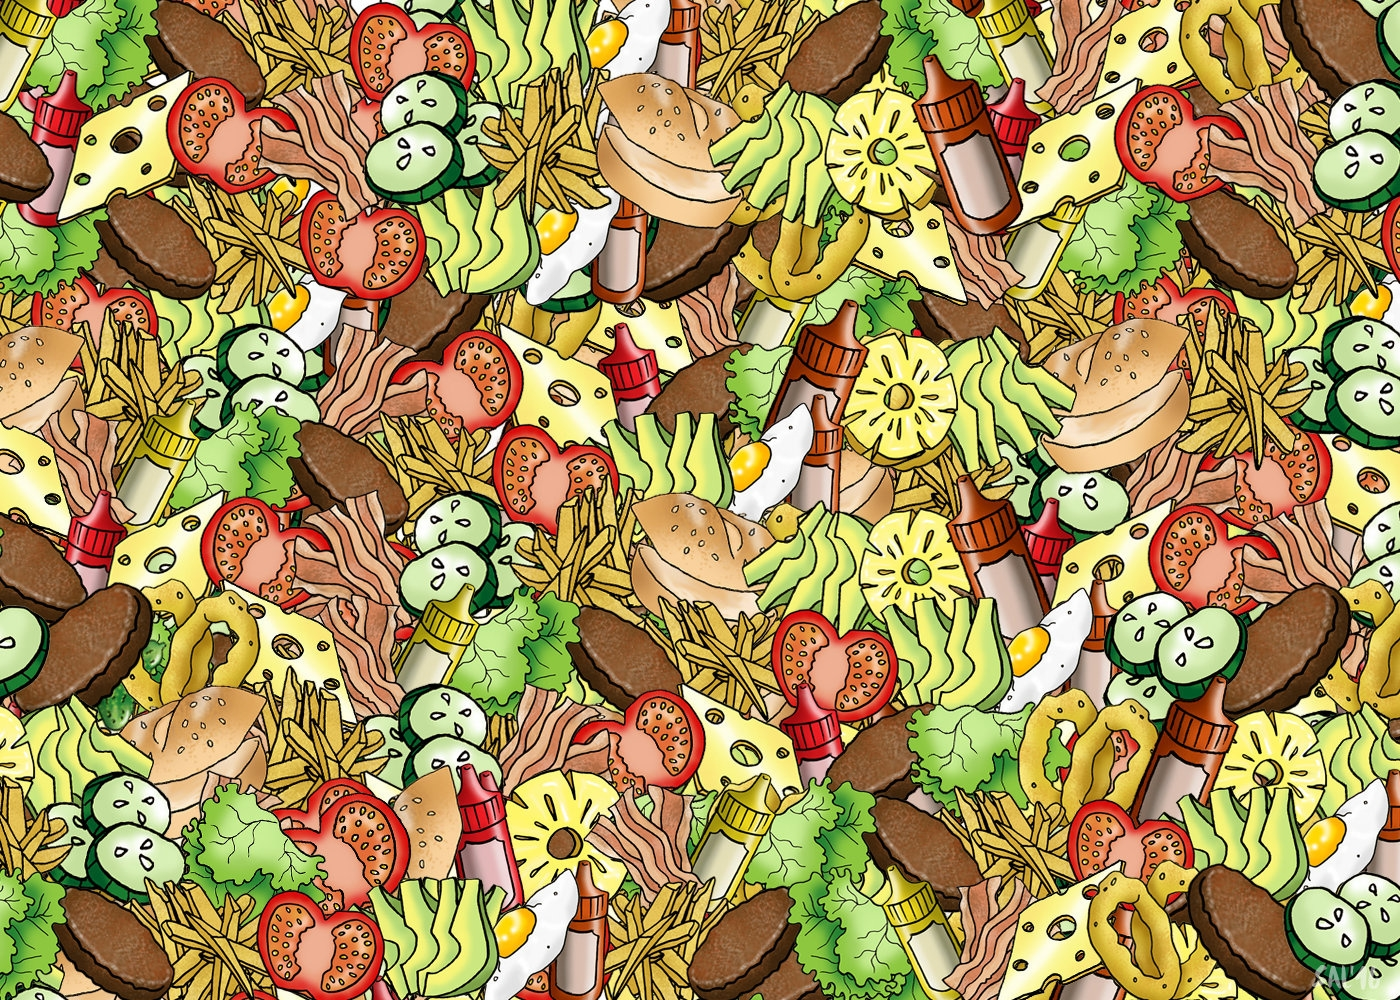 Can you spot the gherkin in this picture puzzle?